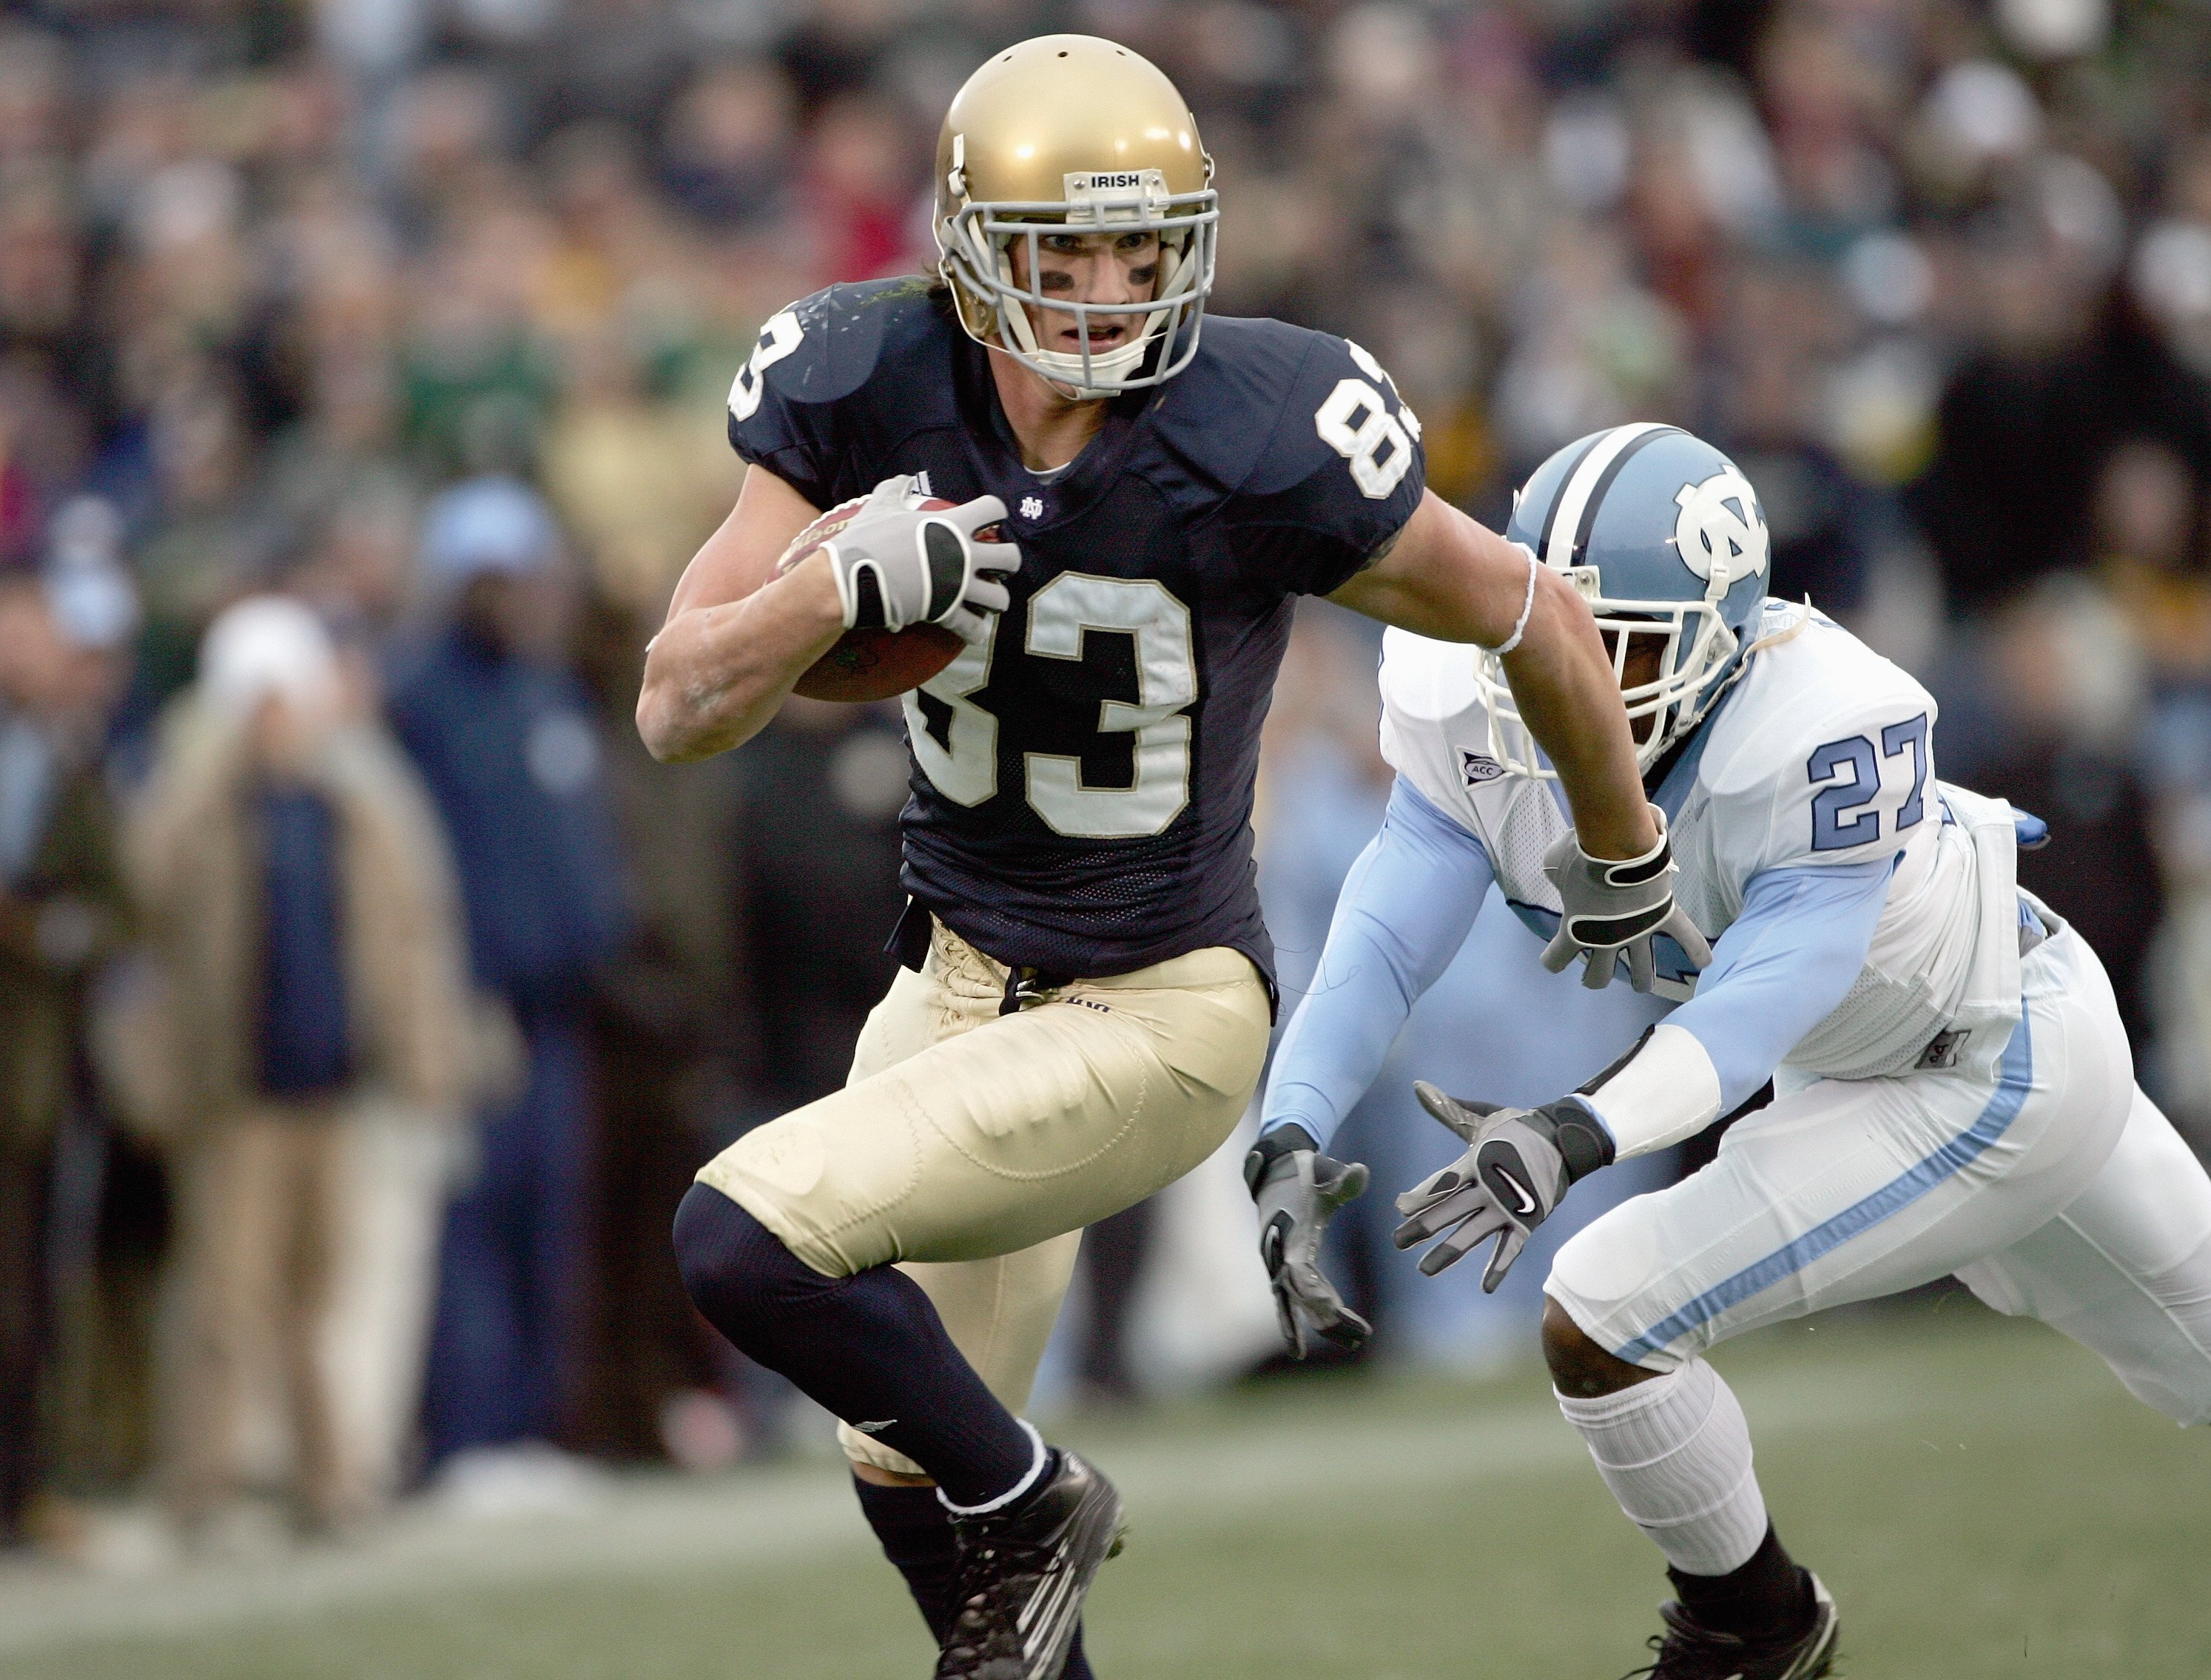 SOUTH BEND, IN - NOVEMBER 4:  Jeff Samardzija #83 of the Notre Dame Fighting Irish carries the ball during the game against the North Carolina Tar Heels on November 4, 2006 at Notre Dame Stadium in South Bend, Indiana. (Photo by Jonathan Daniel/Getty Imag